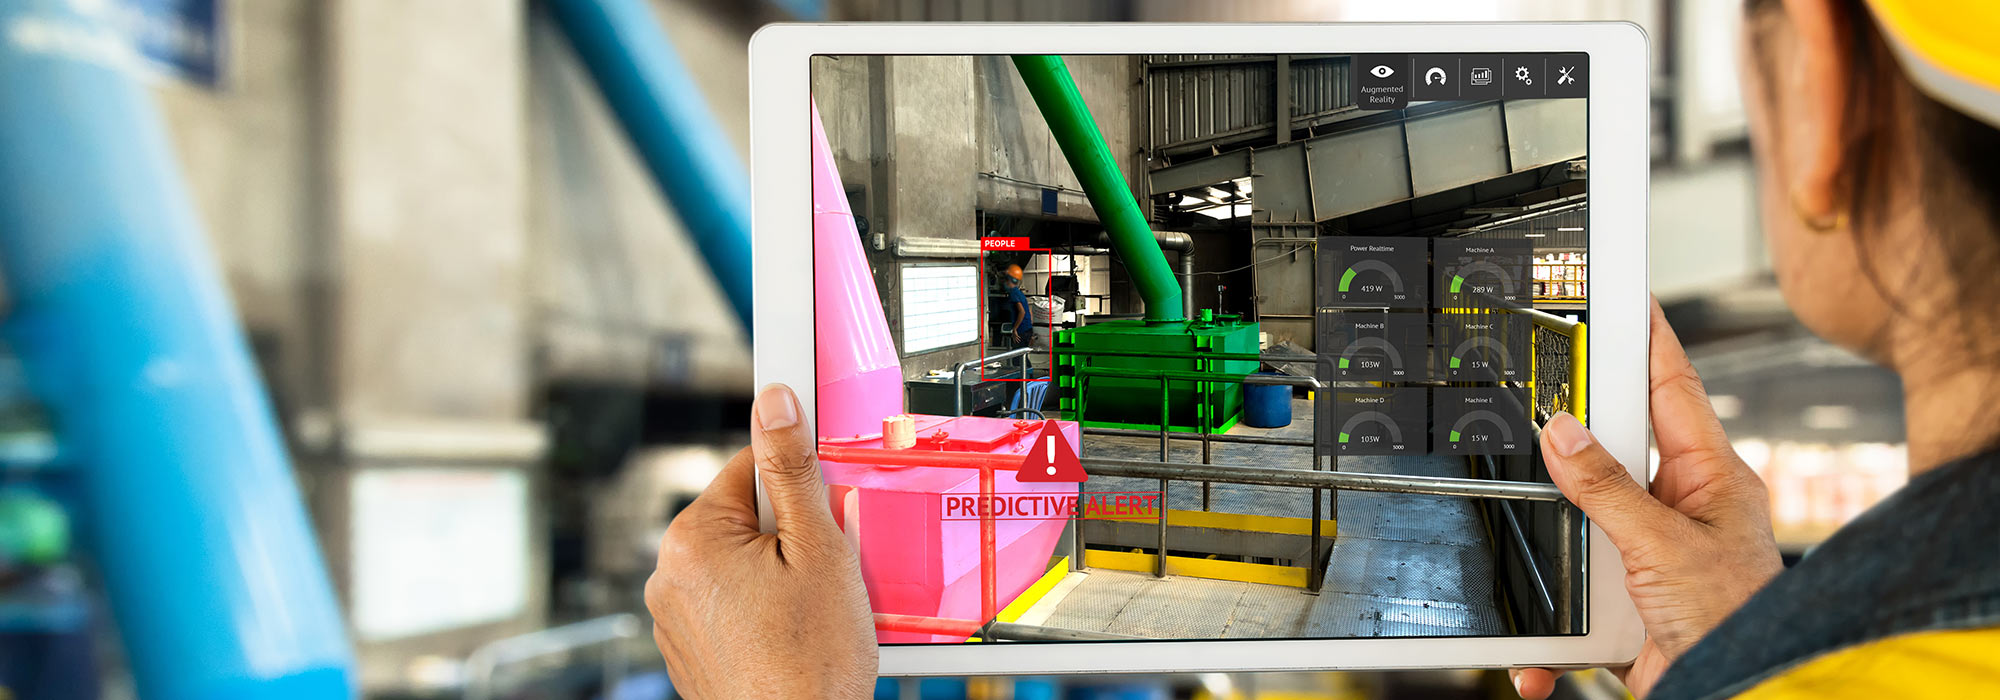 LCD display touch screen tablet at manufacturing facility